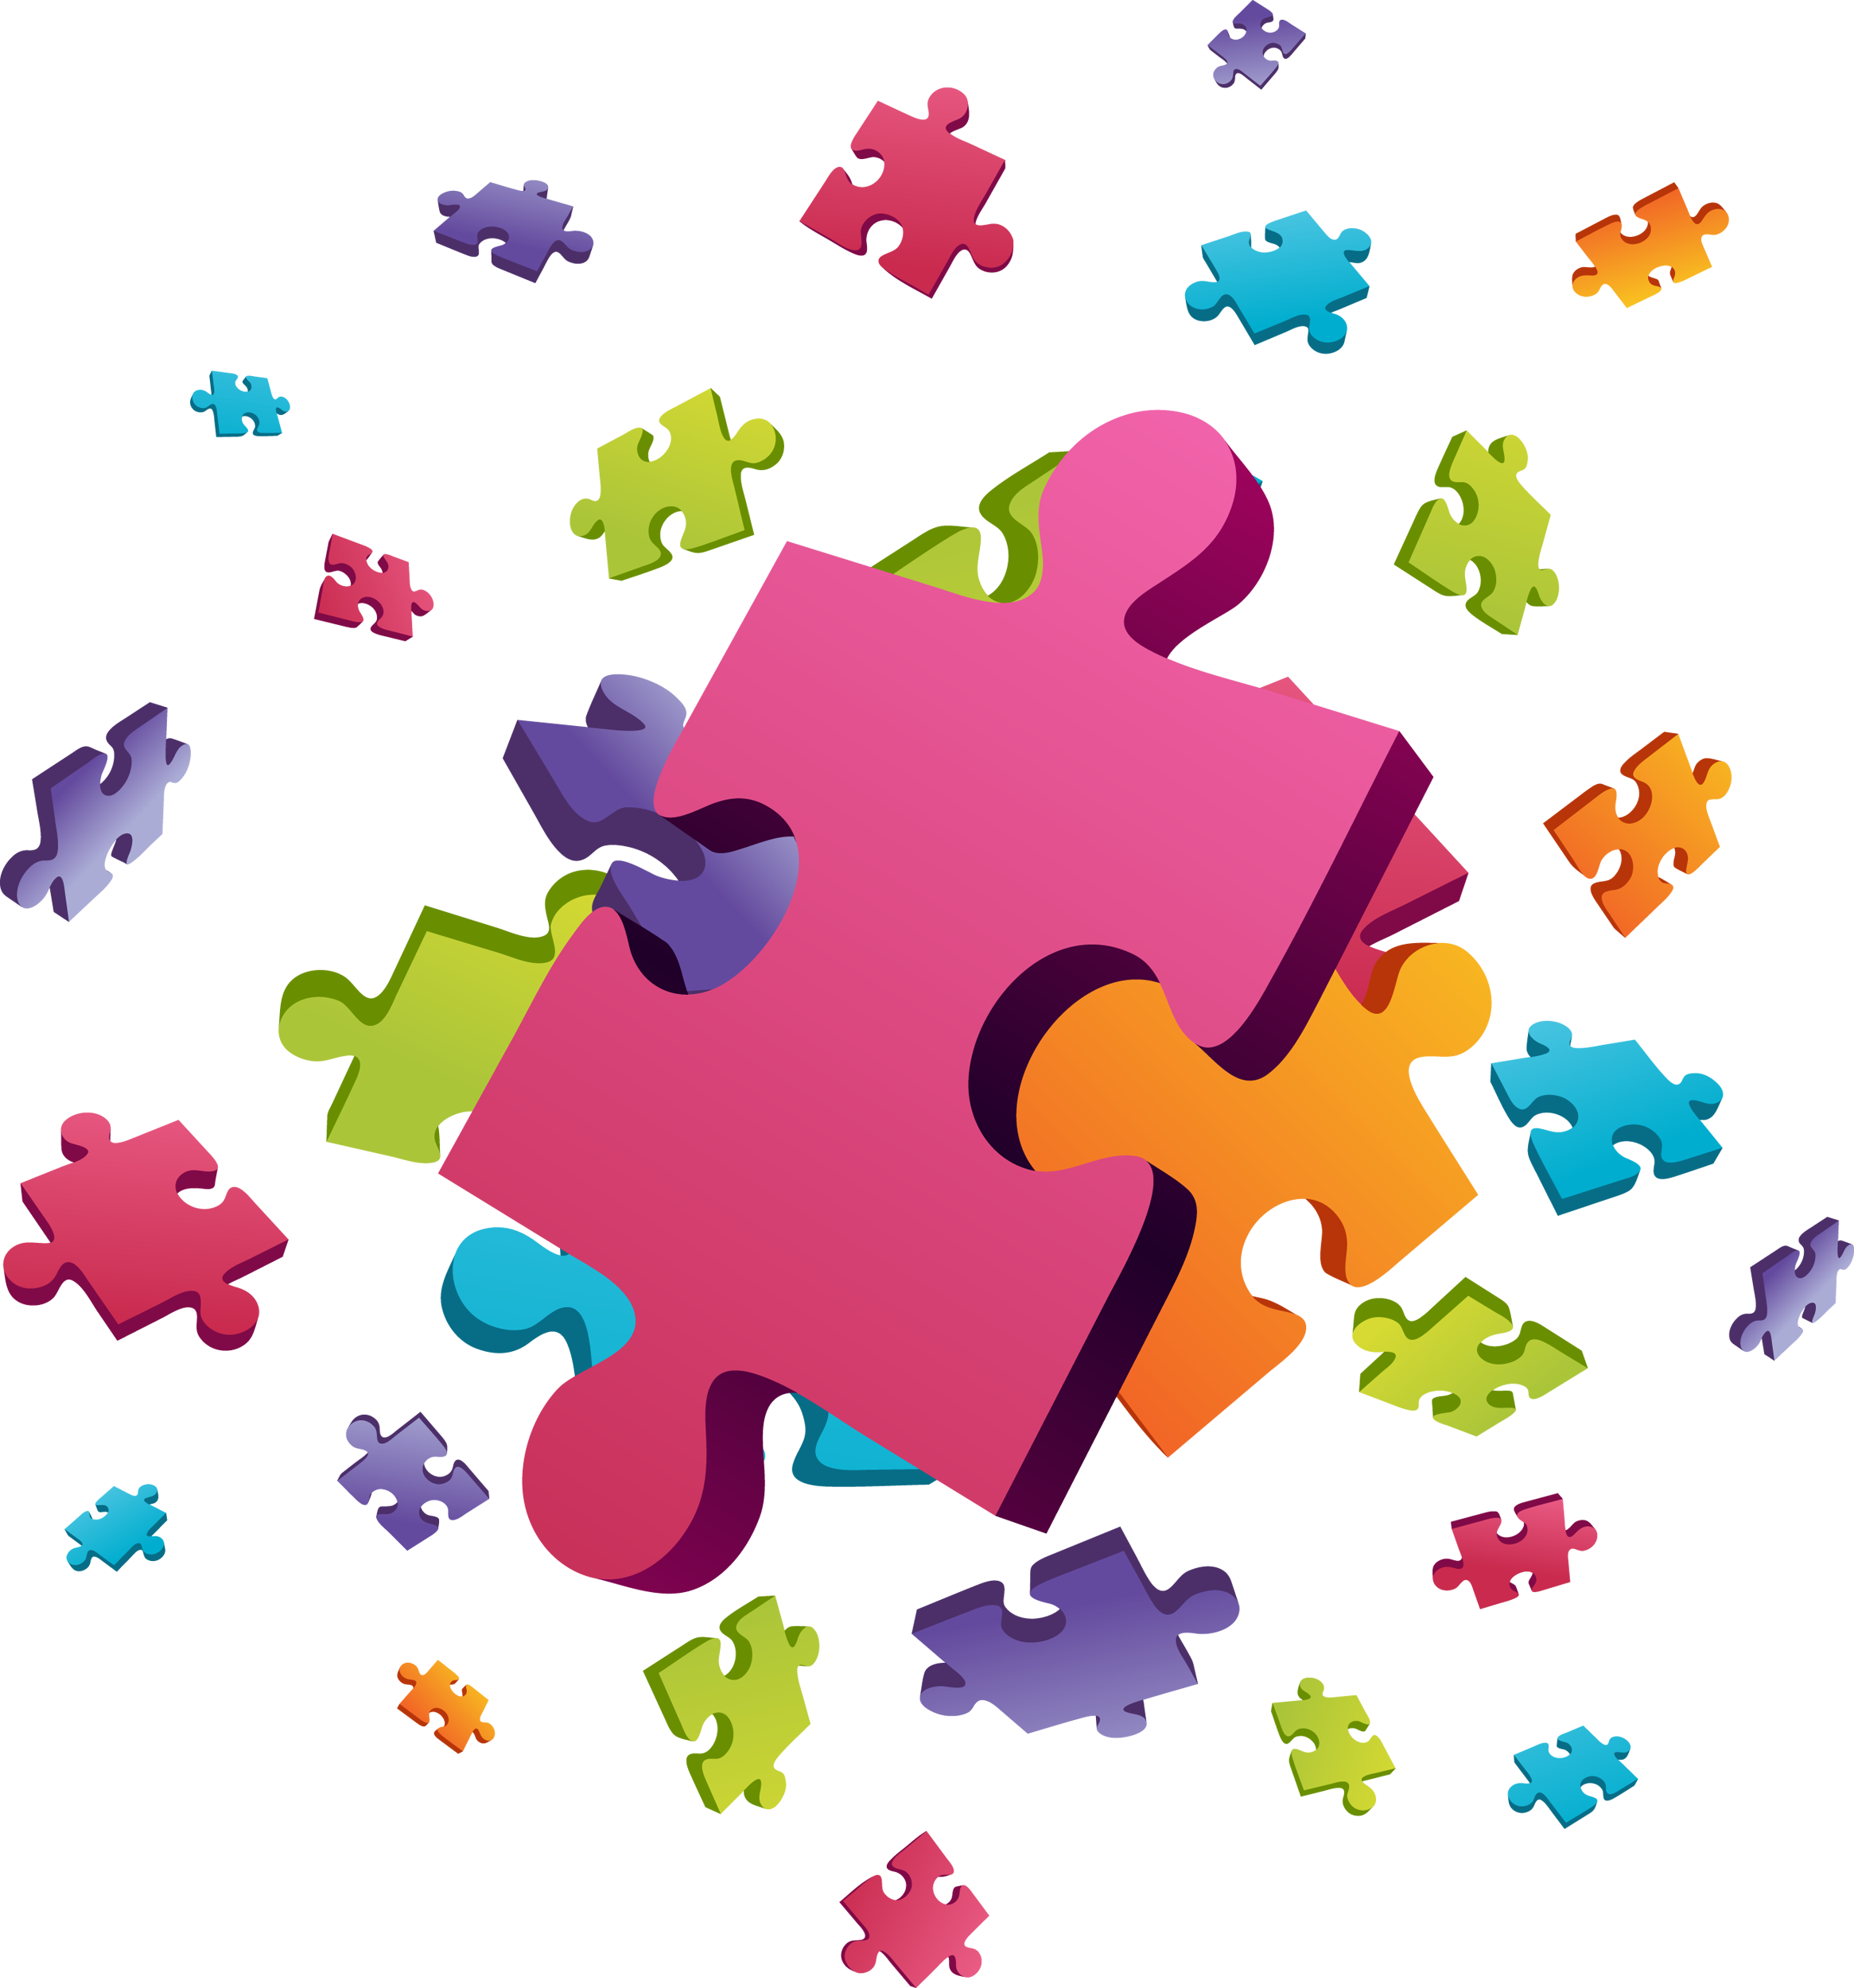 df f b. Puzzle clipart yellow